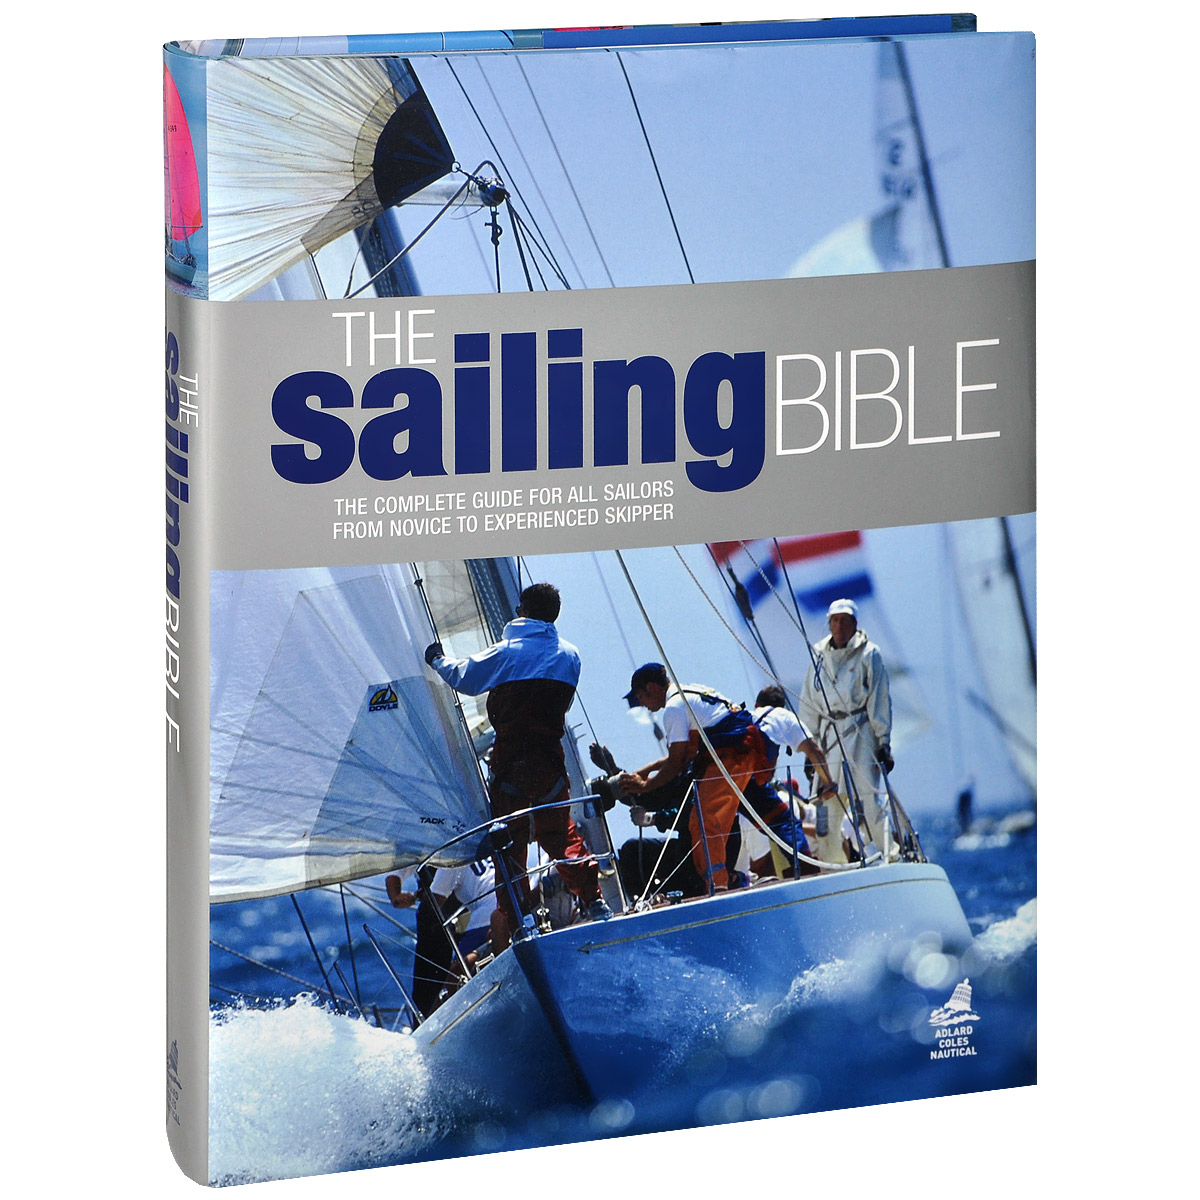 Sailing Bible lazarowich classic chevies of the 50s – a maintenance and repair manual